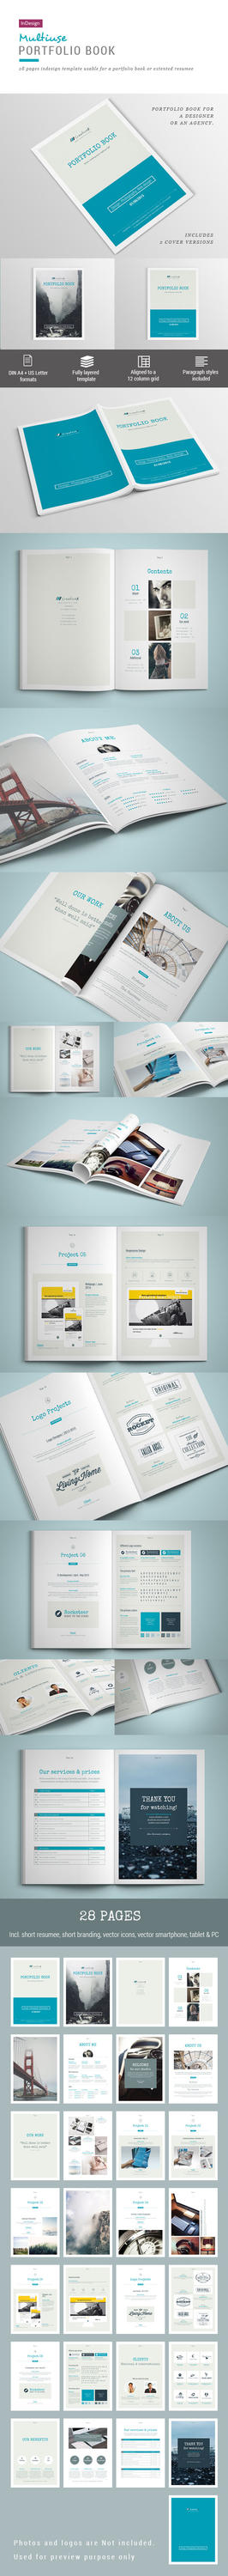 Portfolio Book - 28 Pages by imagearea